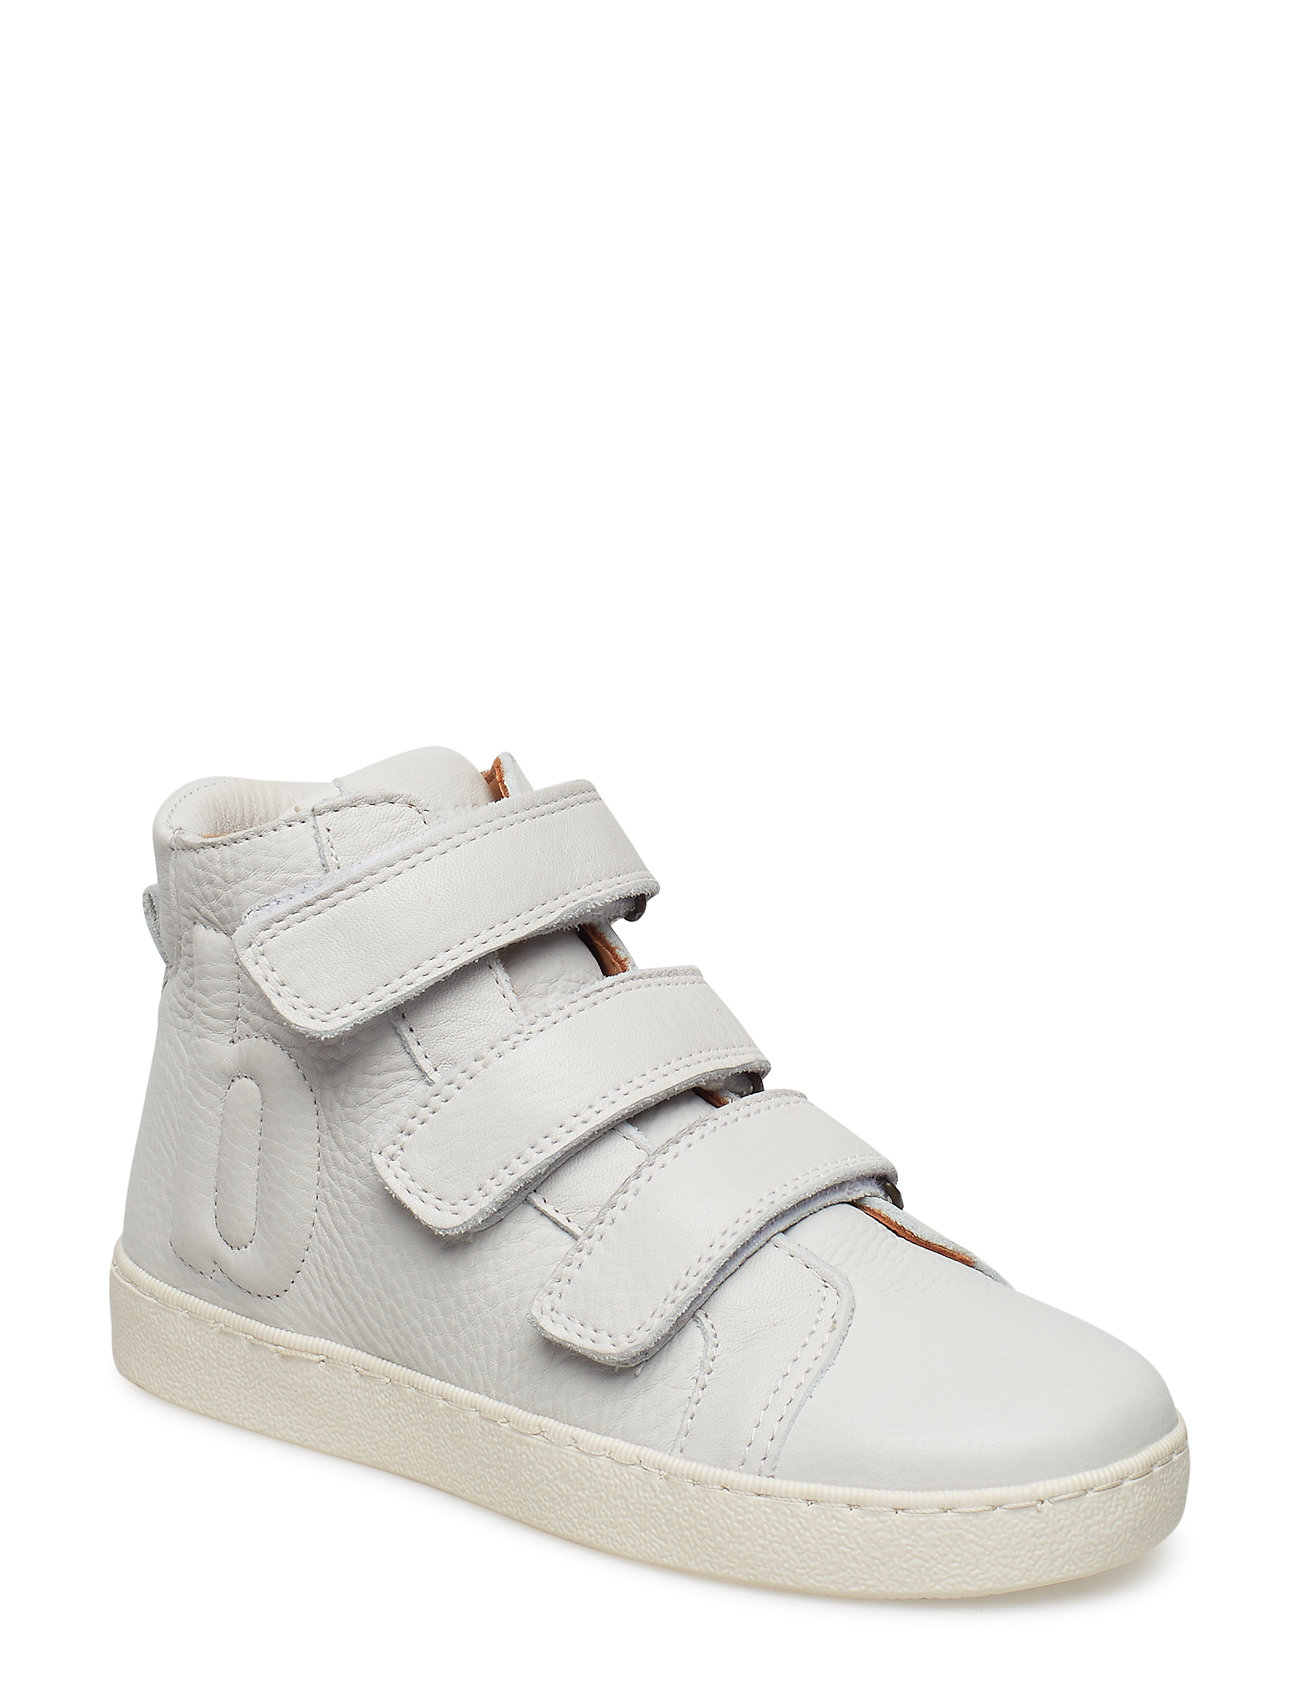 Bisgaard Velcro shoes - WHITE